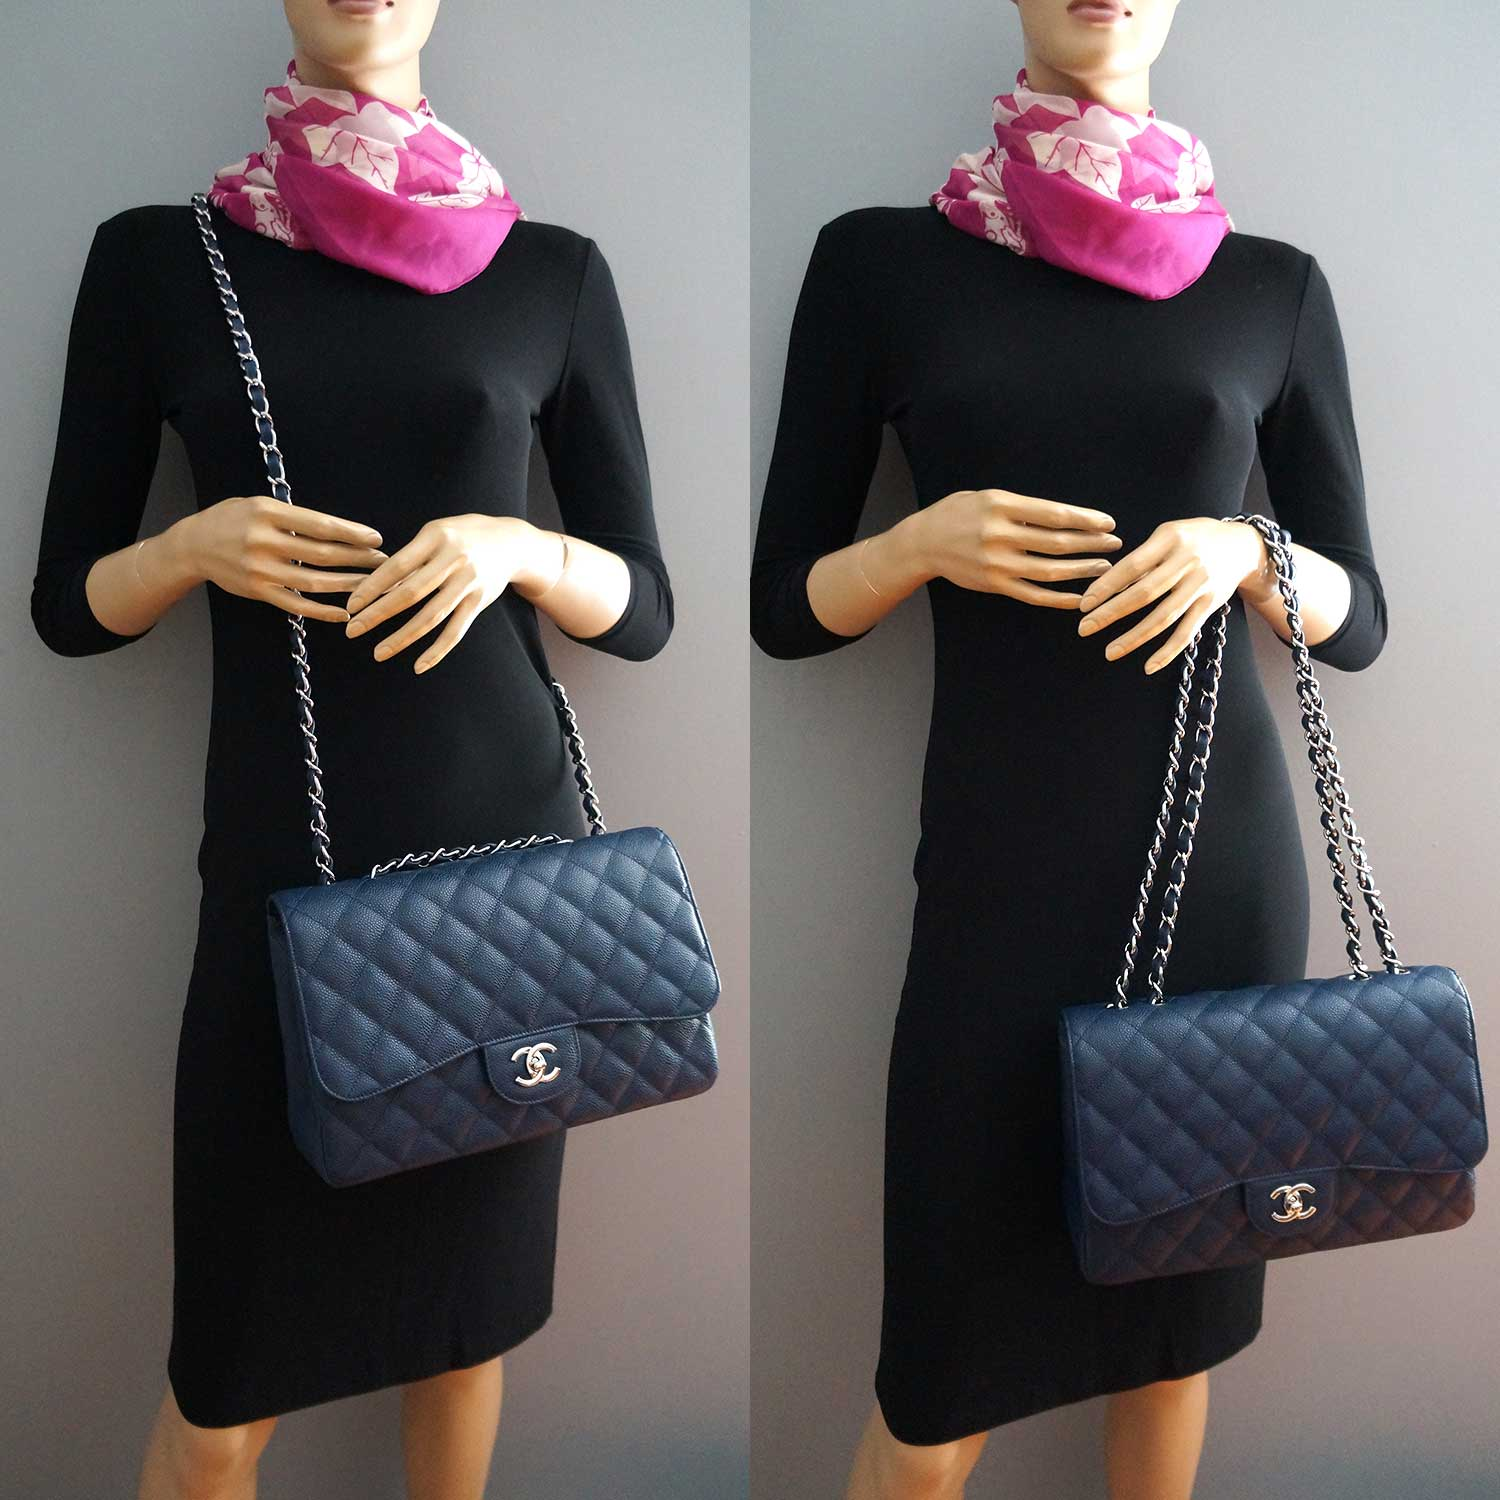 e722dfa5af Chanel Navy Blue Caviar Leather Classic Jumbo Single Flap Bag | | My ...